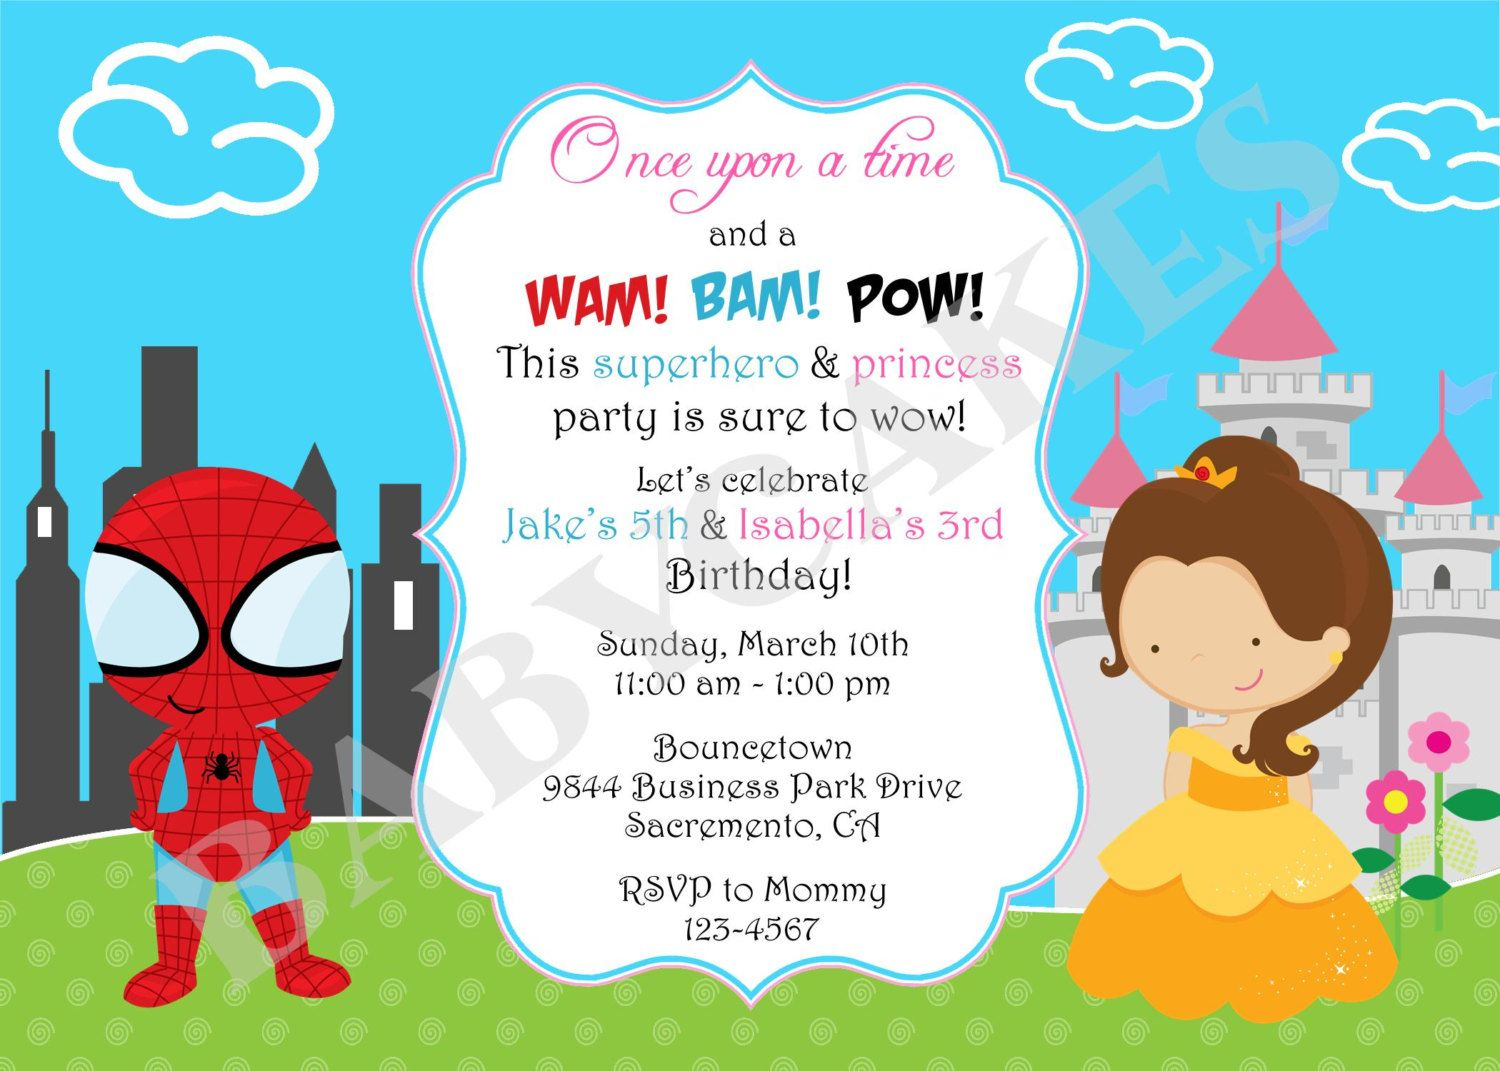 Superhero Princess Birthday Invitation Invite Sibling Superhero ...